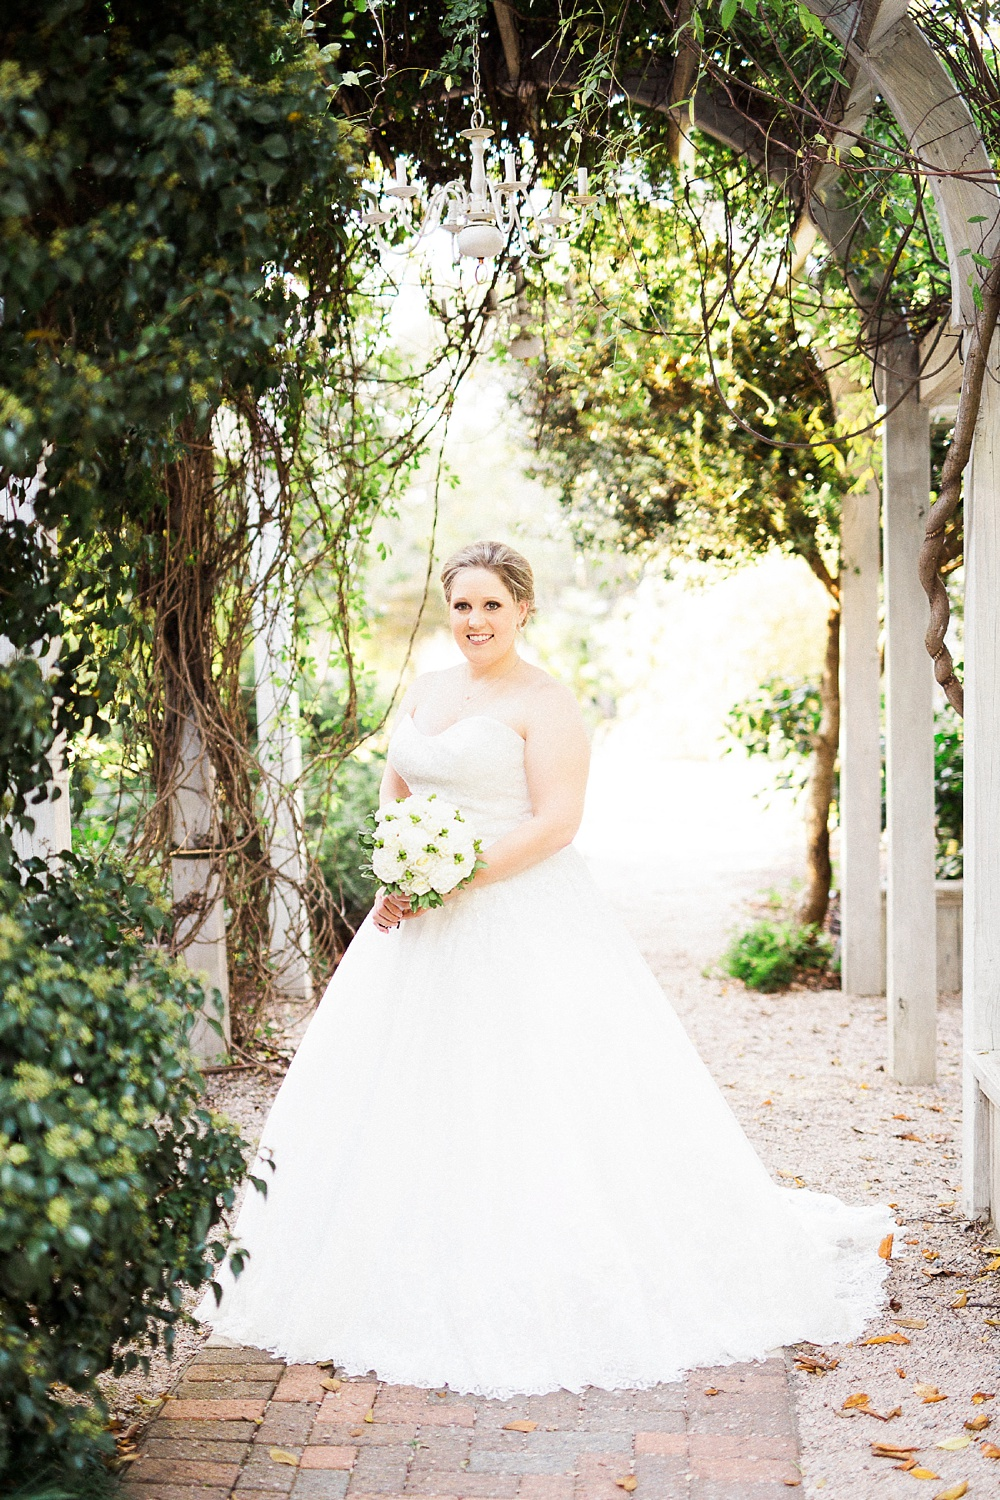 Rachael Bowman Photography-JC Raulston Arboretum-Raleigh-NC-Bridal Session-Photographer-Photos_0007.jpg